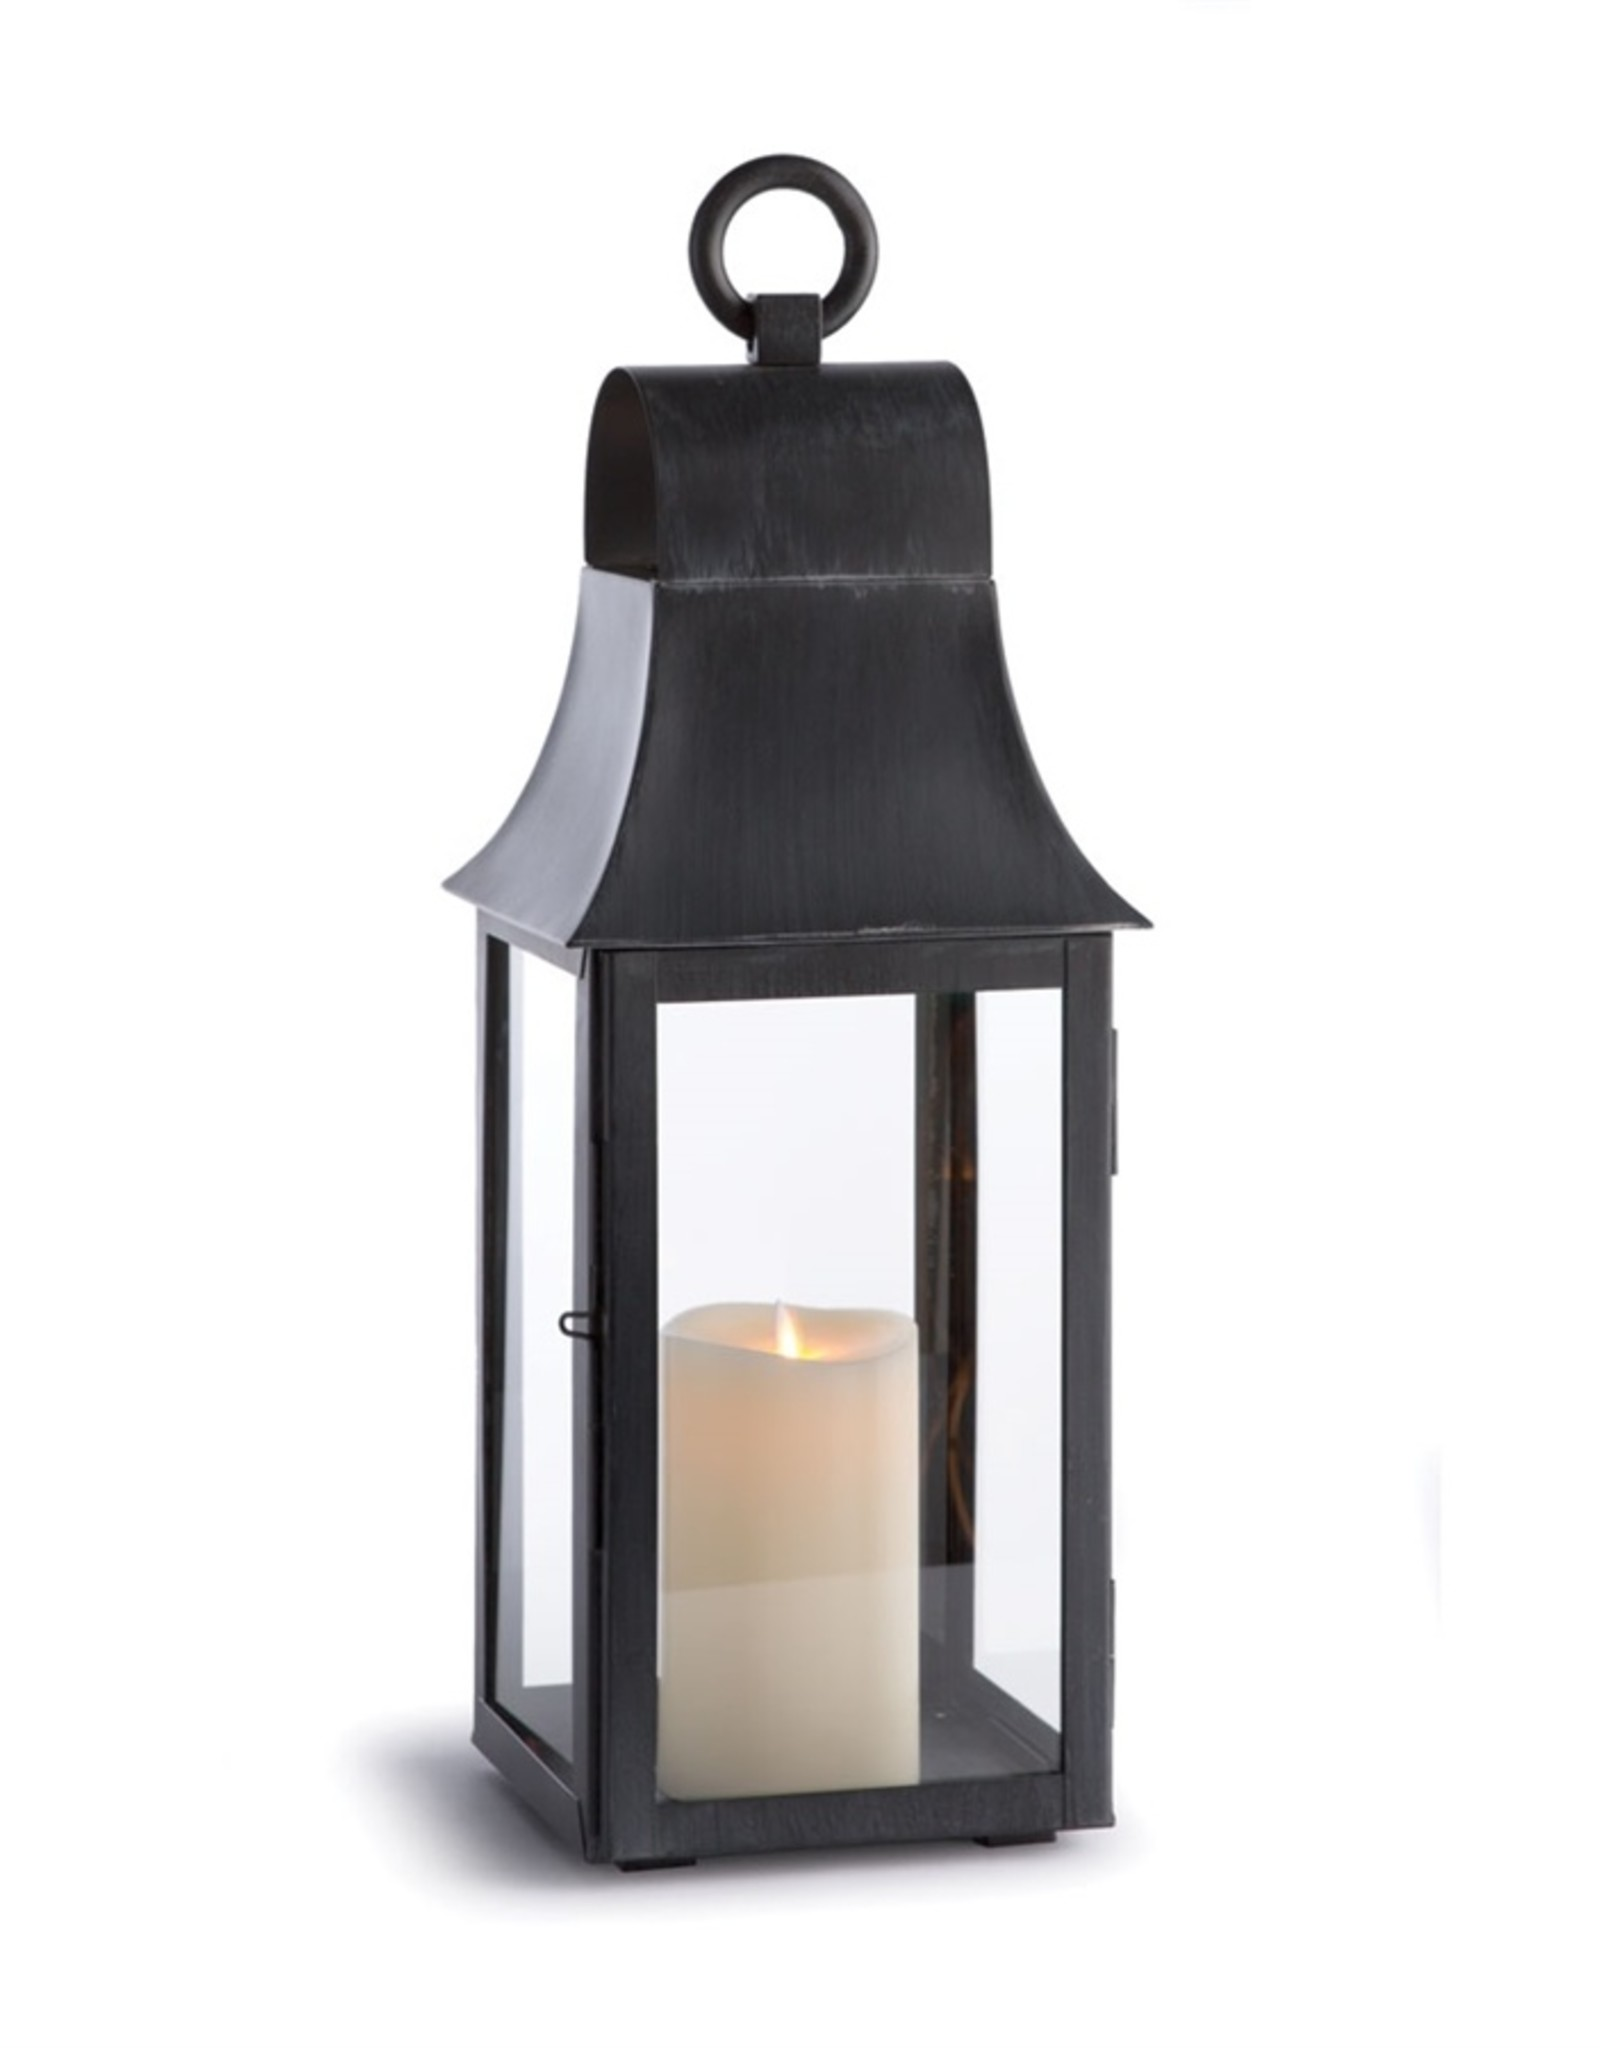 Napa Home and Garden Geneva Lantern